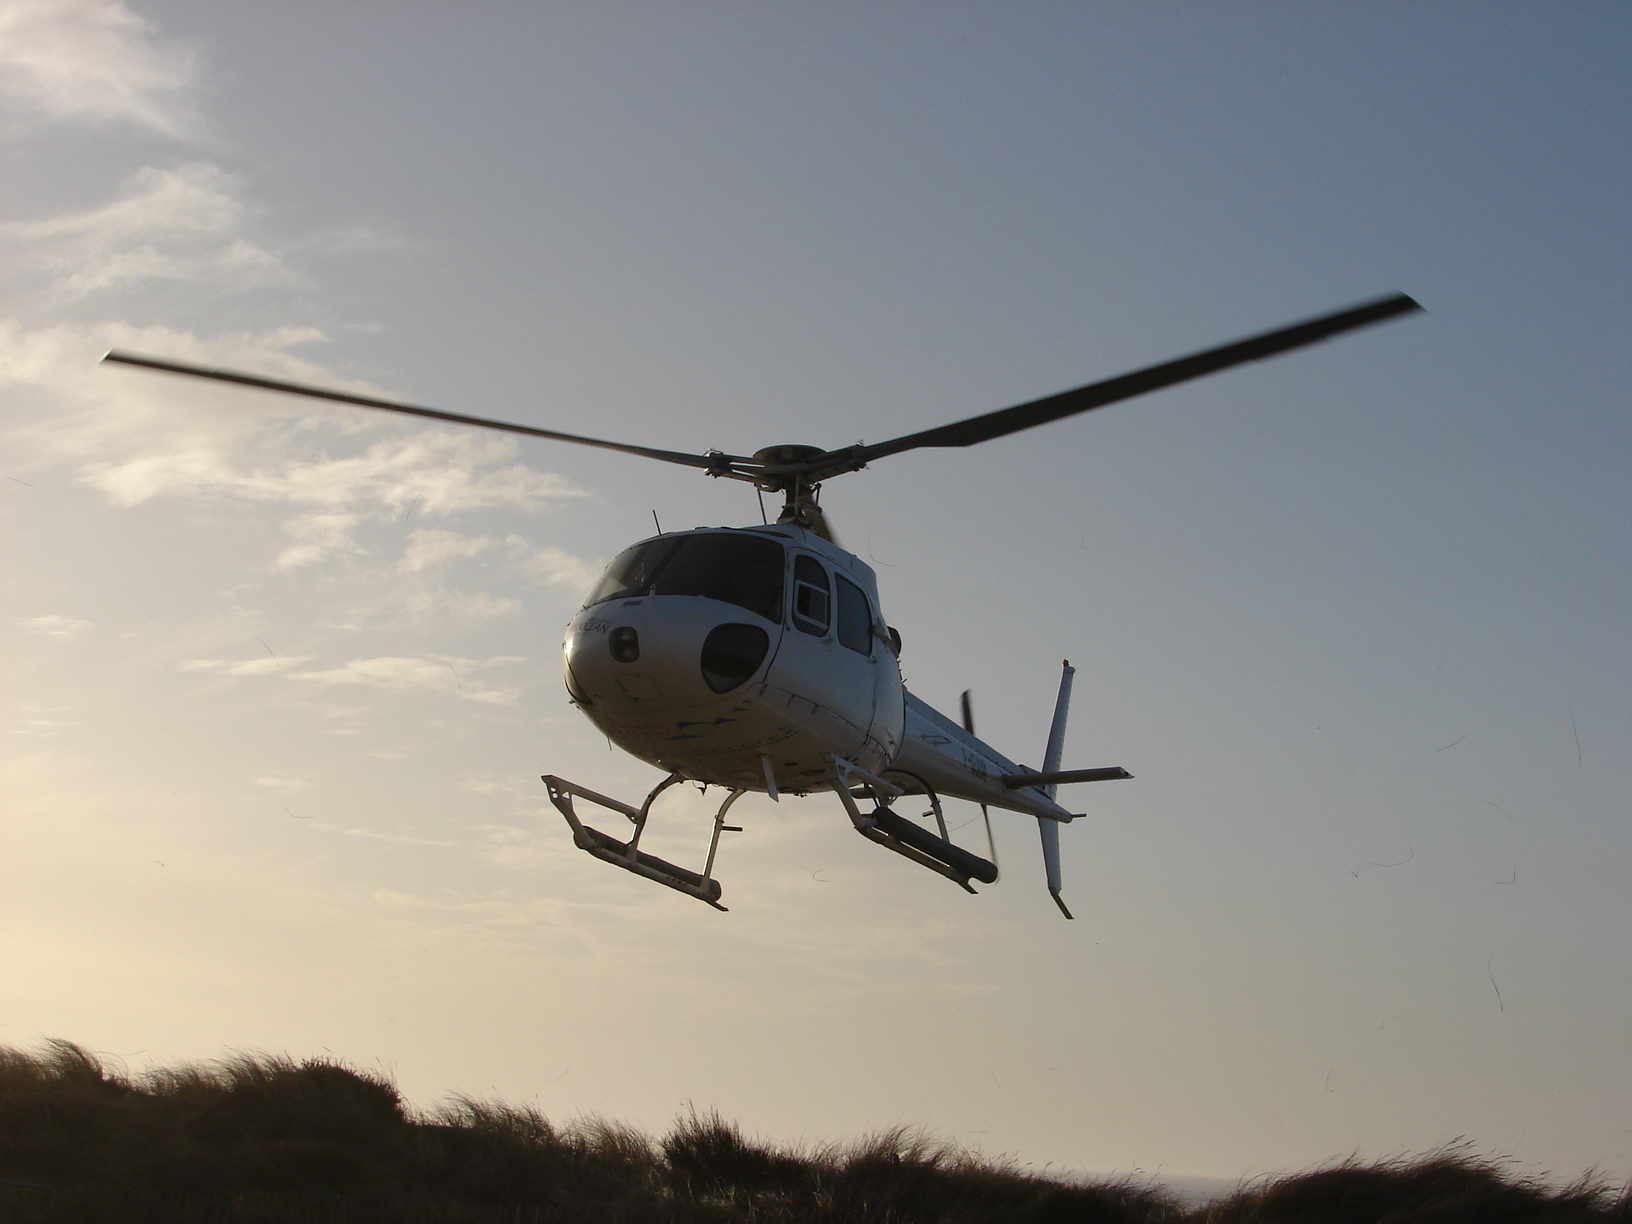 Airbus AS350 Ecureuil